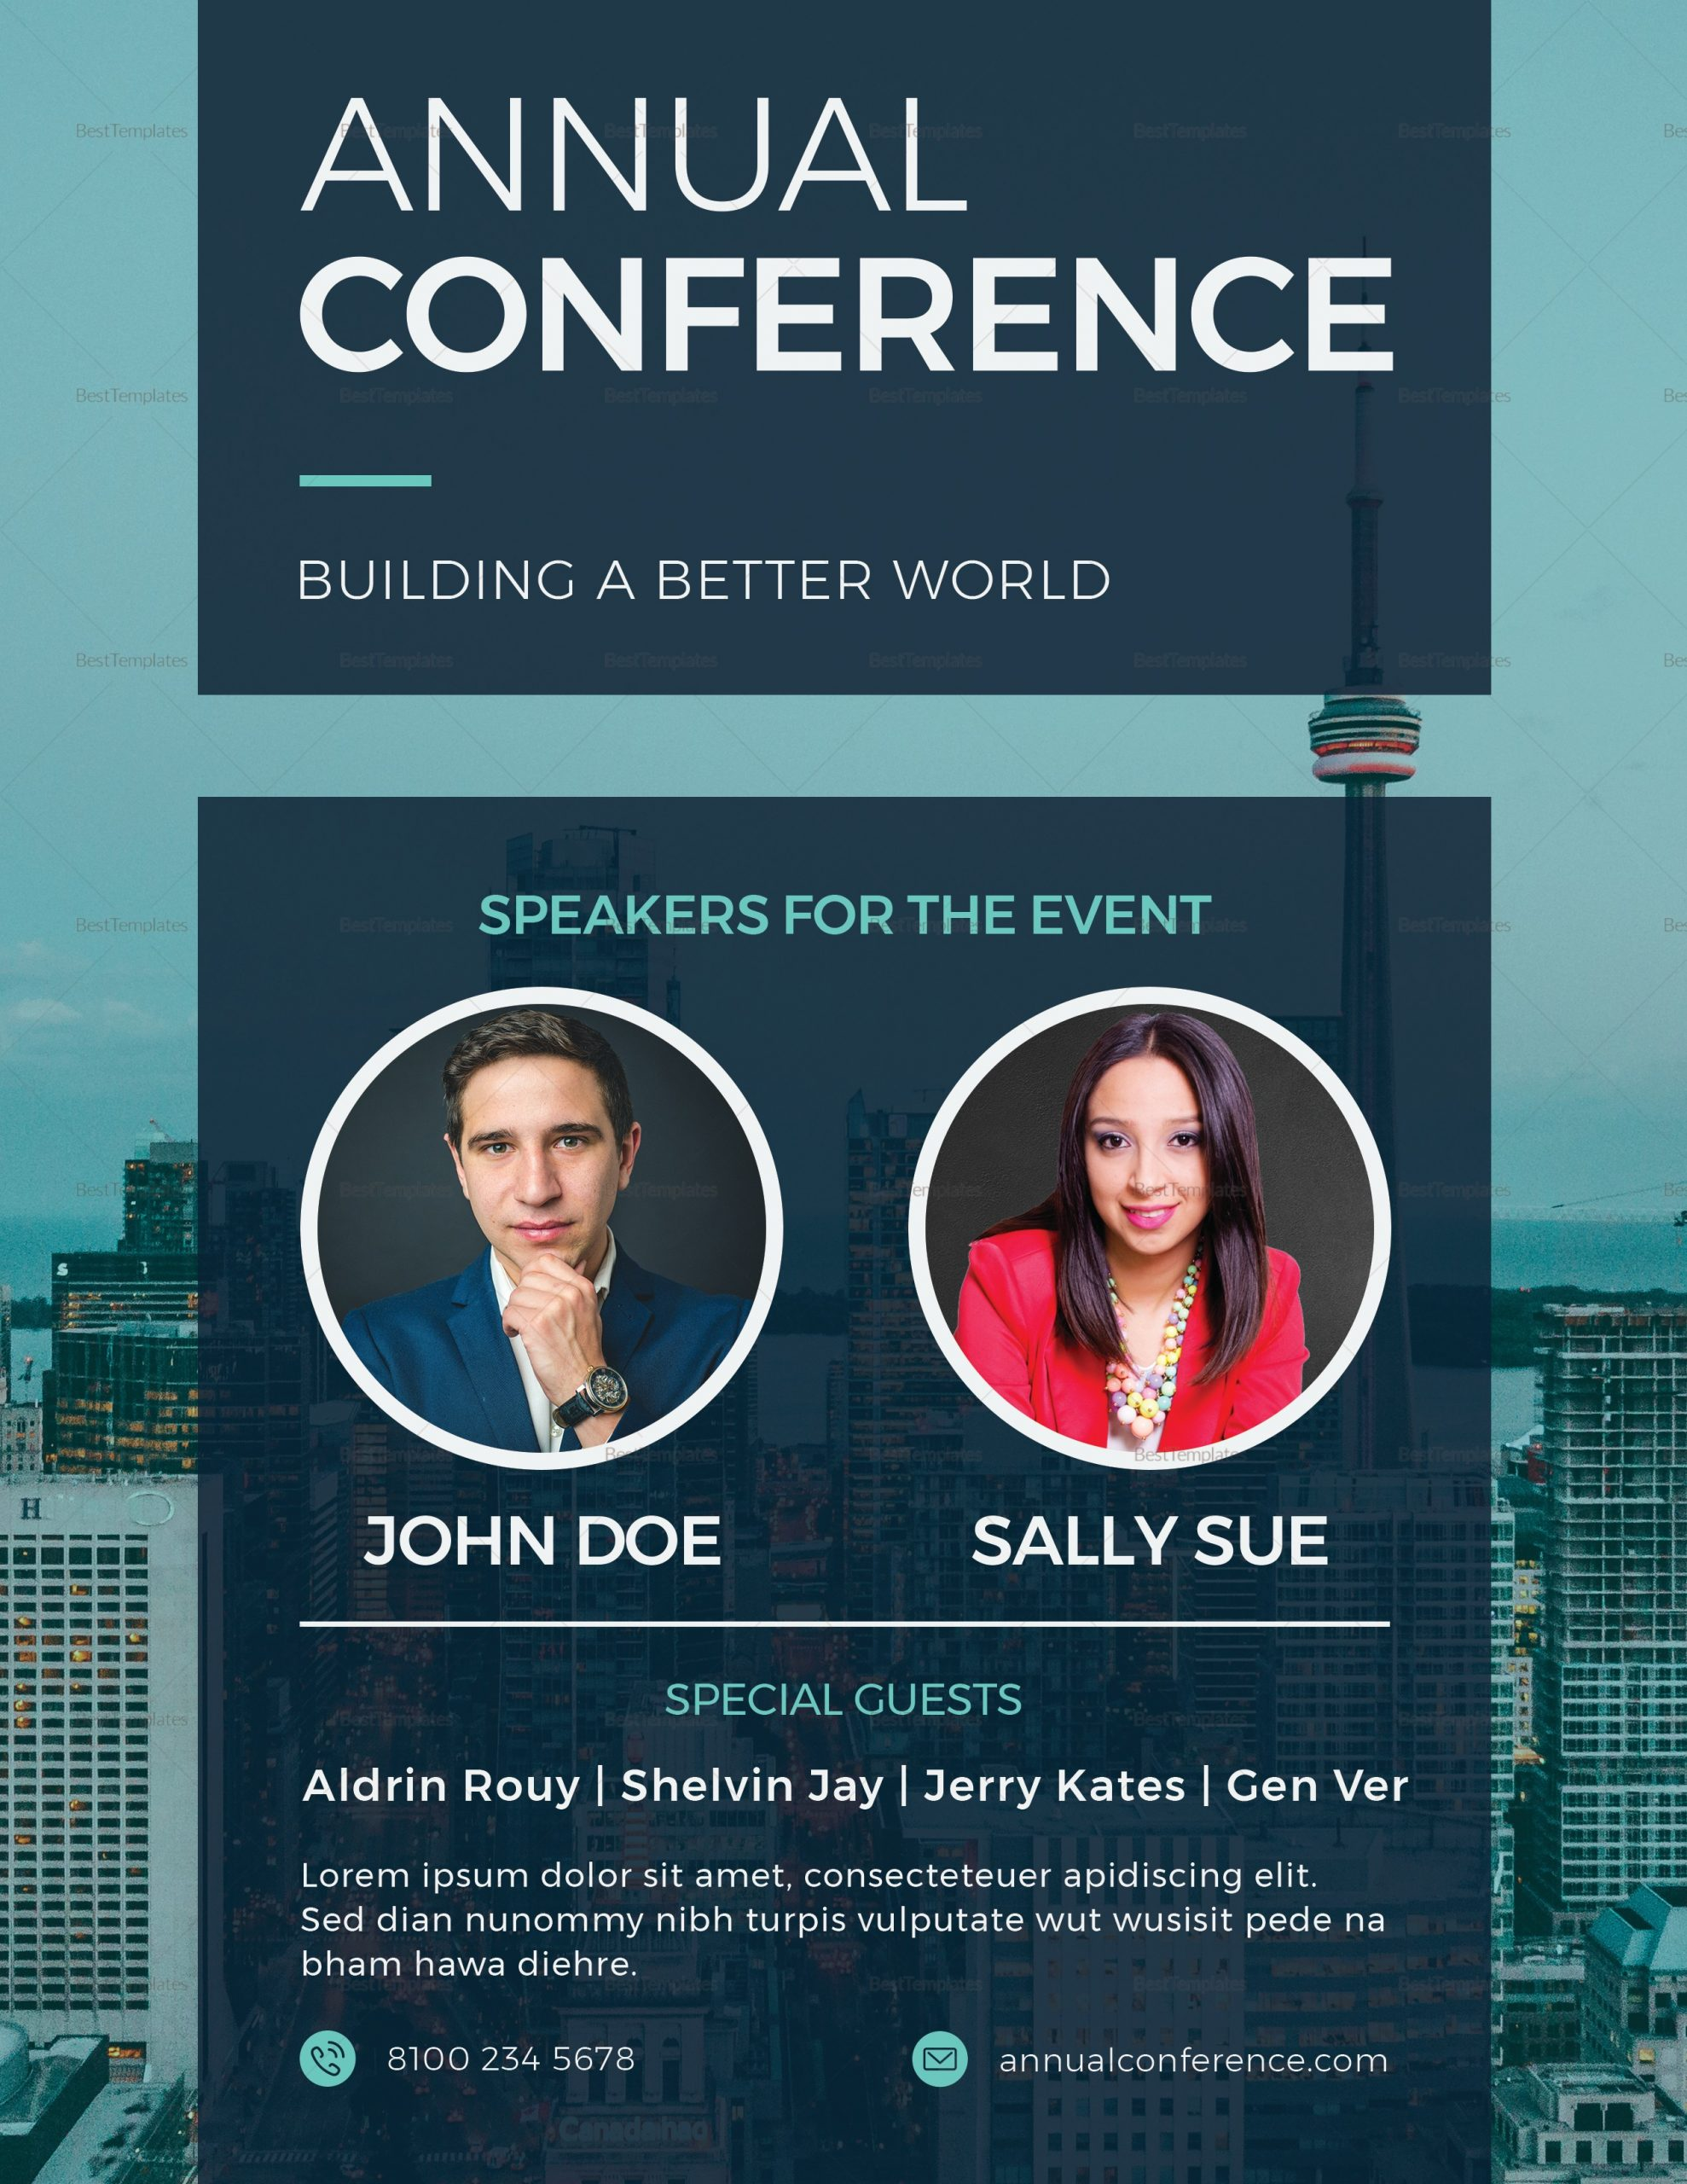 conference flyer template  Annual Conference Flyer Design Template in PSD, Word ..